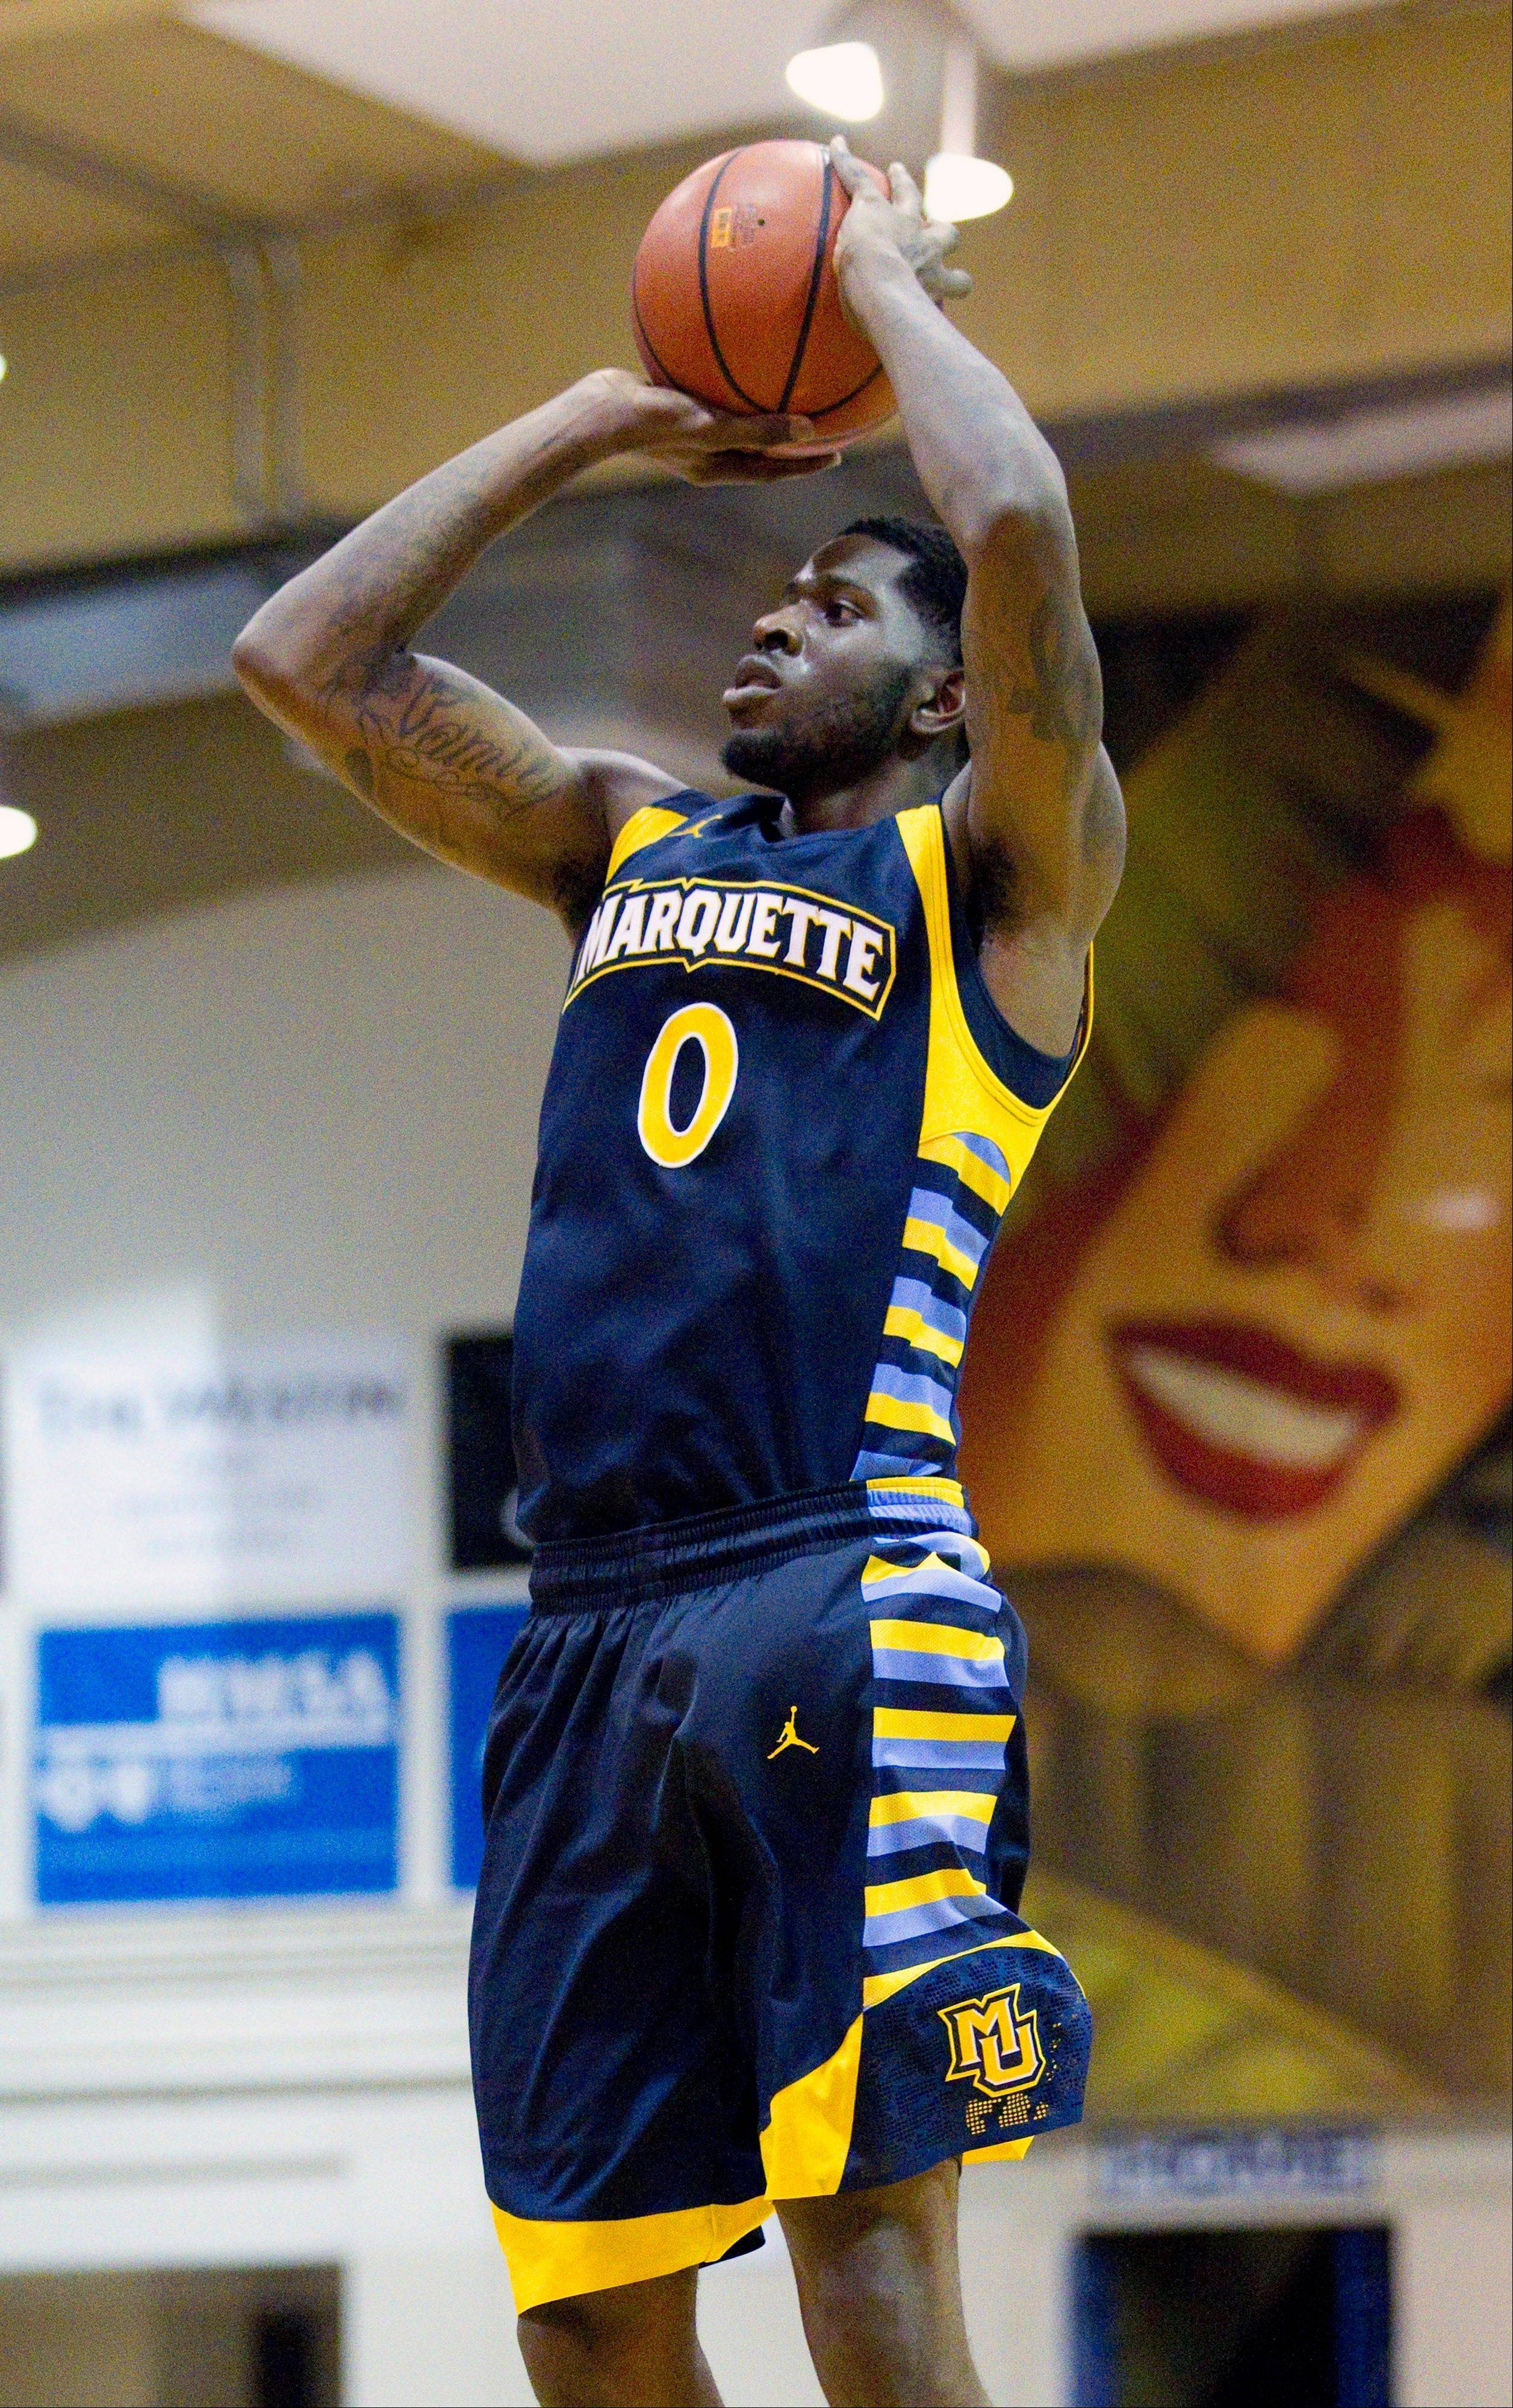 Marquette forward Jamil Wilson takes a jump shot in the second half while playing against Southern California Wednesday in the Maui Invitational.